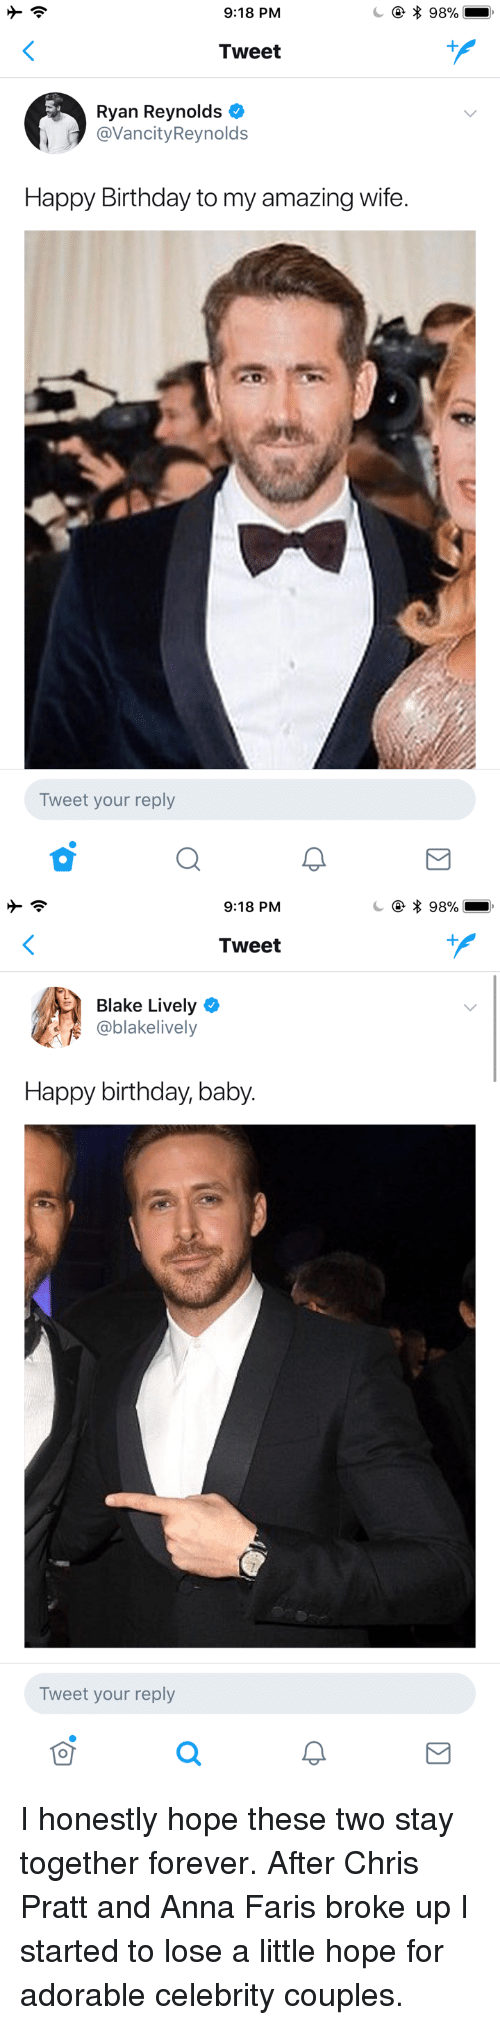 Blake Lively: 9:18 PM  * 98%  Tweet  Ryan Reynolds  @VancityReynolds  Happy Birthday to my amazing wife.  Tweet your reply   9:18 PM  * 98%  Tweet  Blake Lively  @blakelively  Happy birthday, baby.  Tweet your reply <p>I honestly hope these two stay together forever. After Chris Pratt and Anna Faris broke up I started to lose a little hope for adorable celebrity couples.</p>